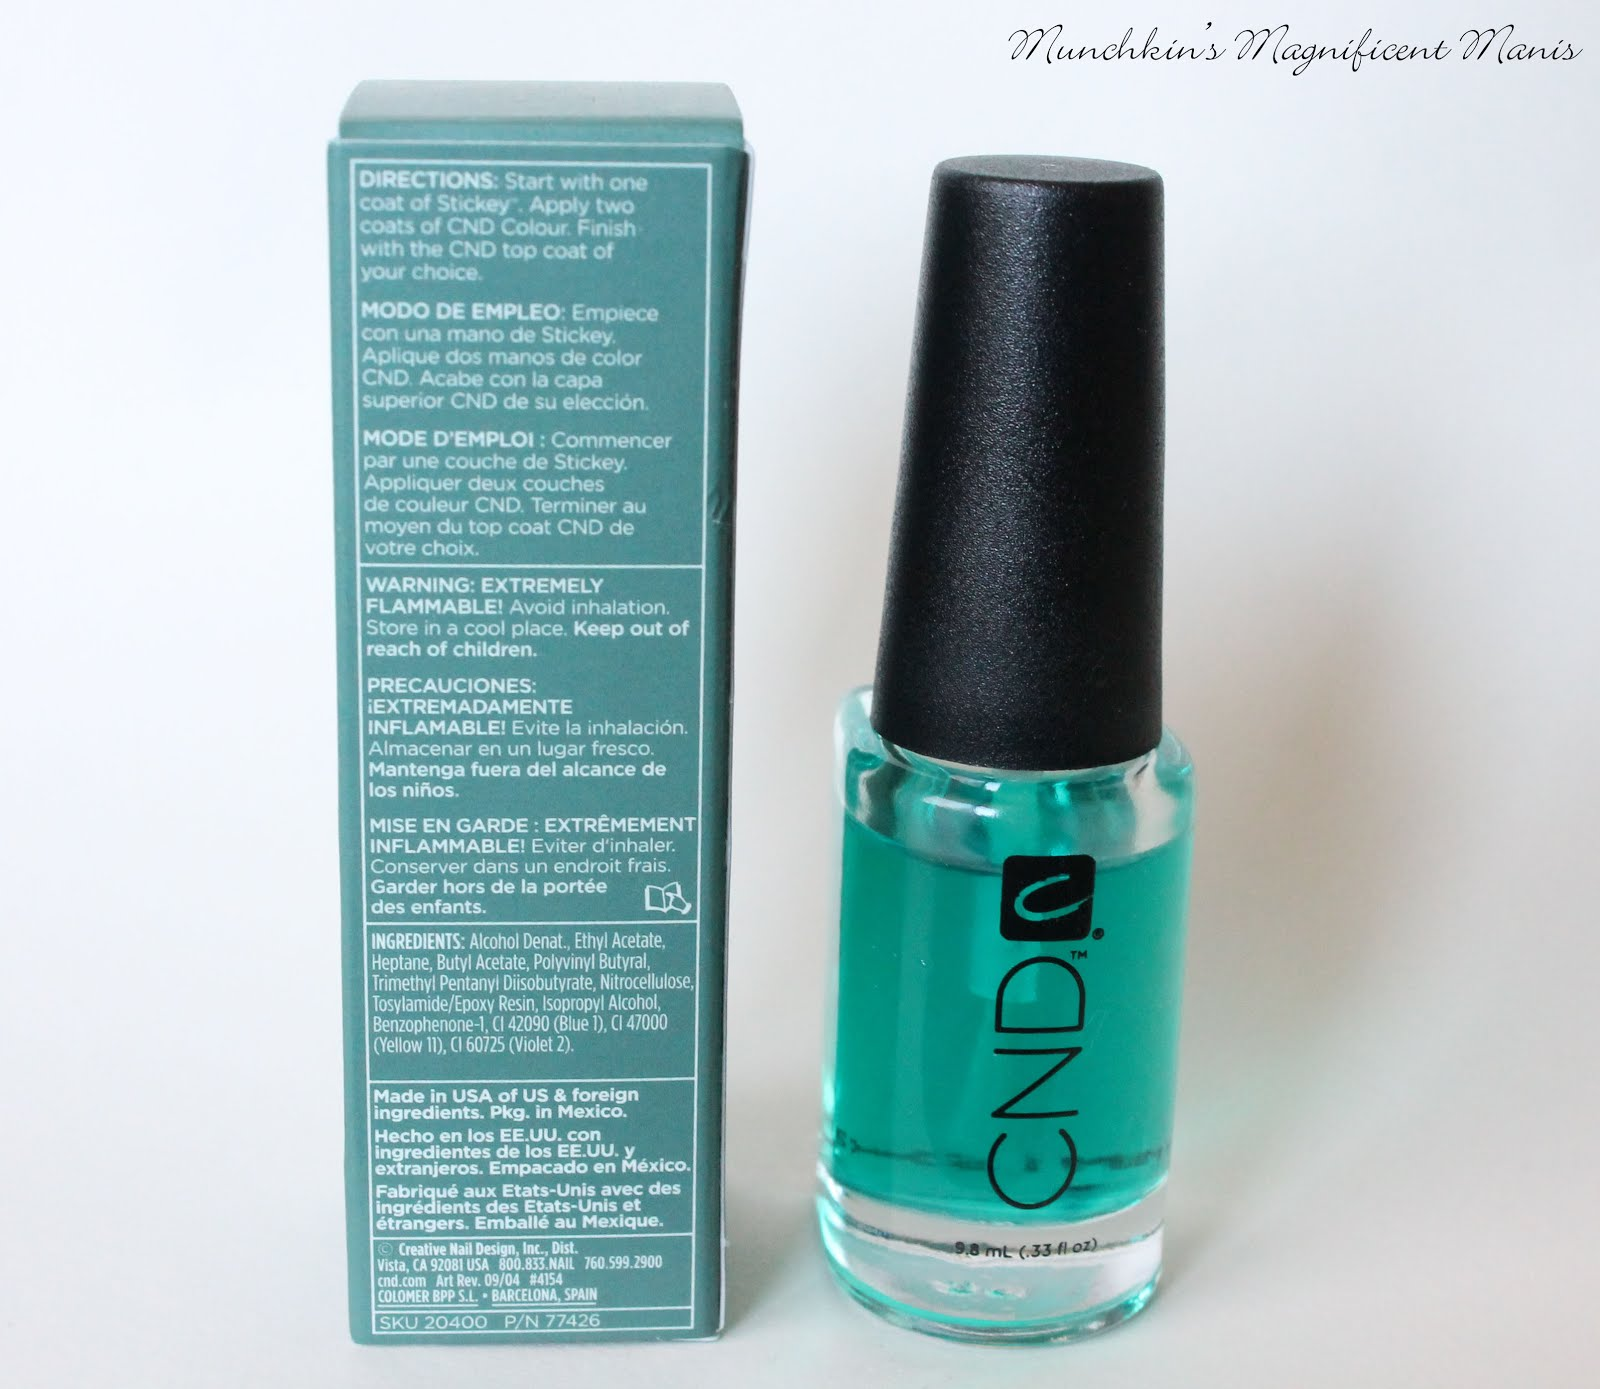 Munchkin S Magnificent Manis All About The Base And Top Coat